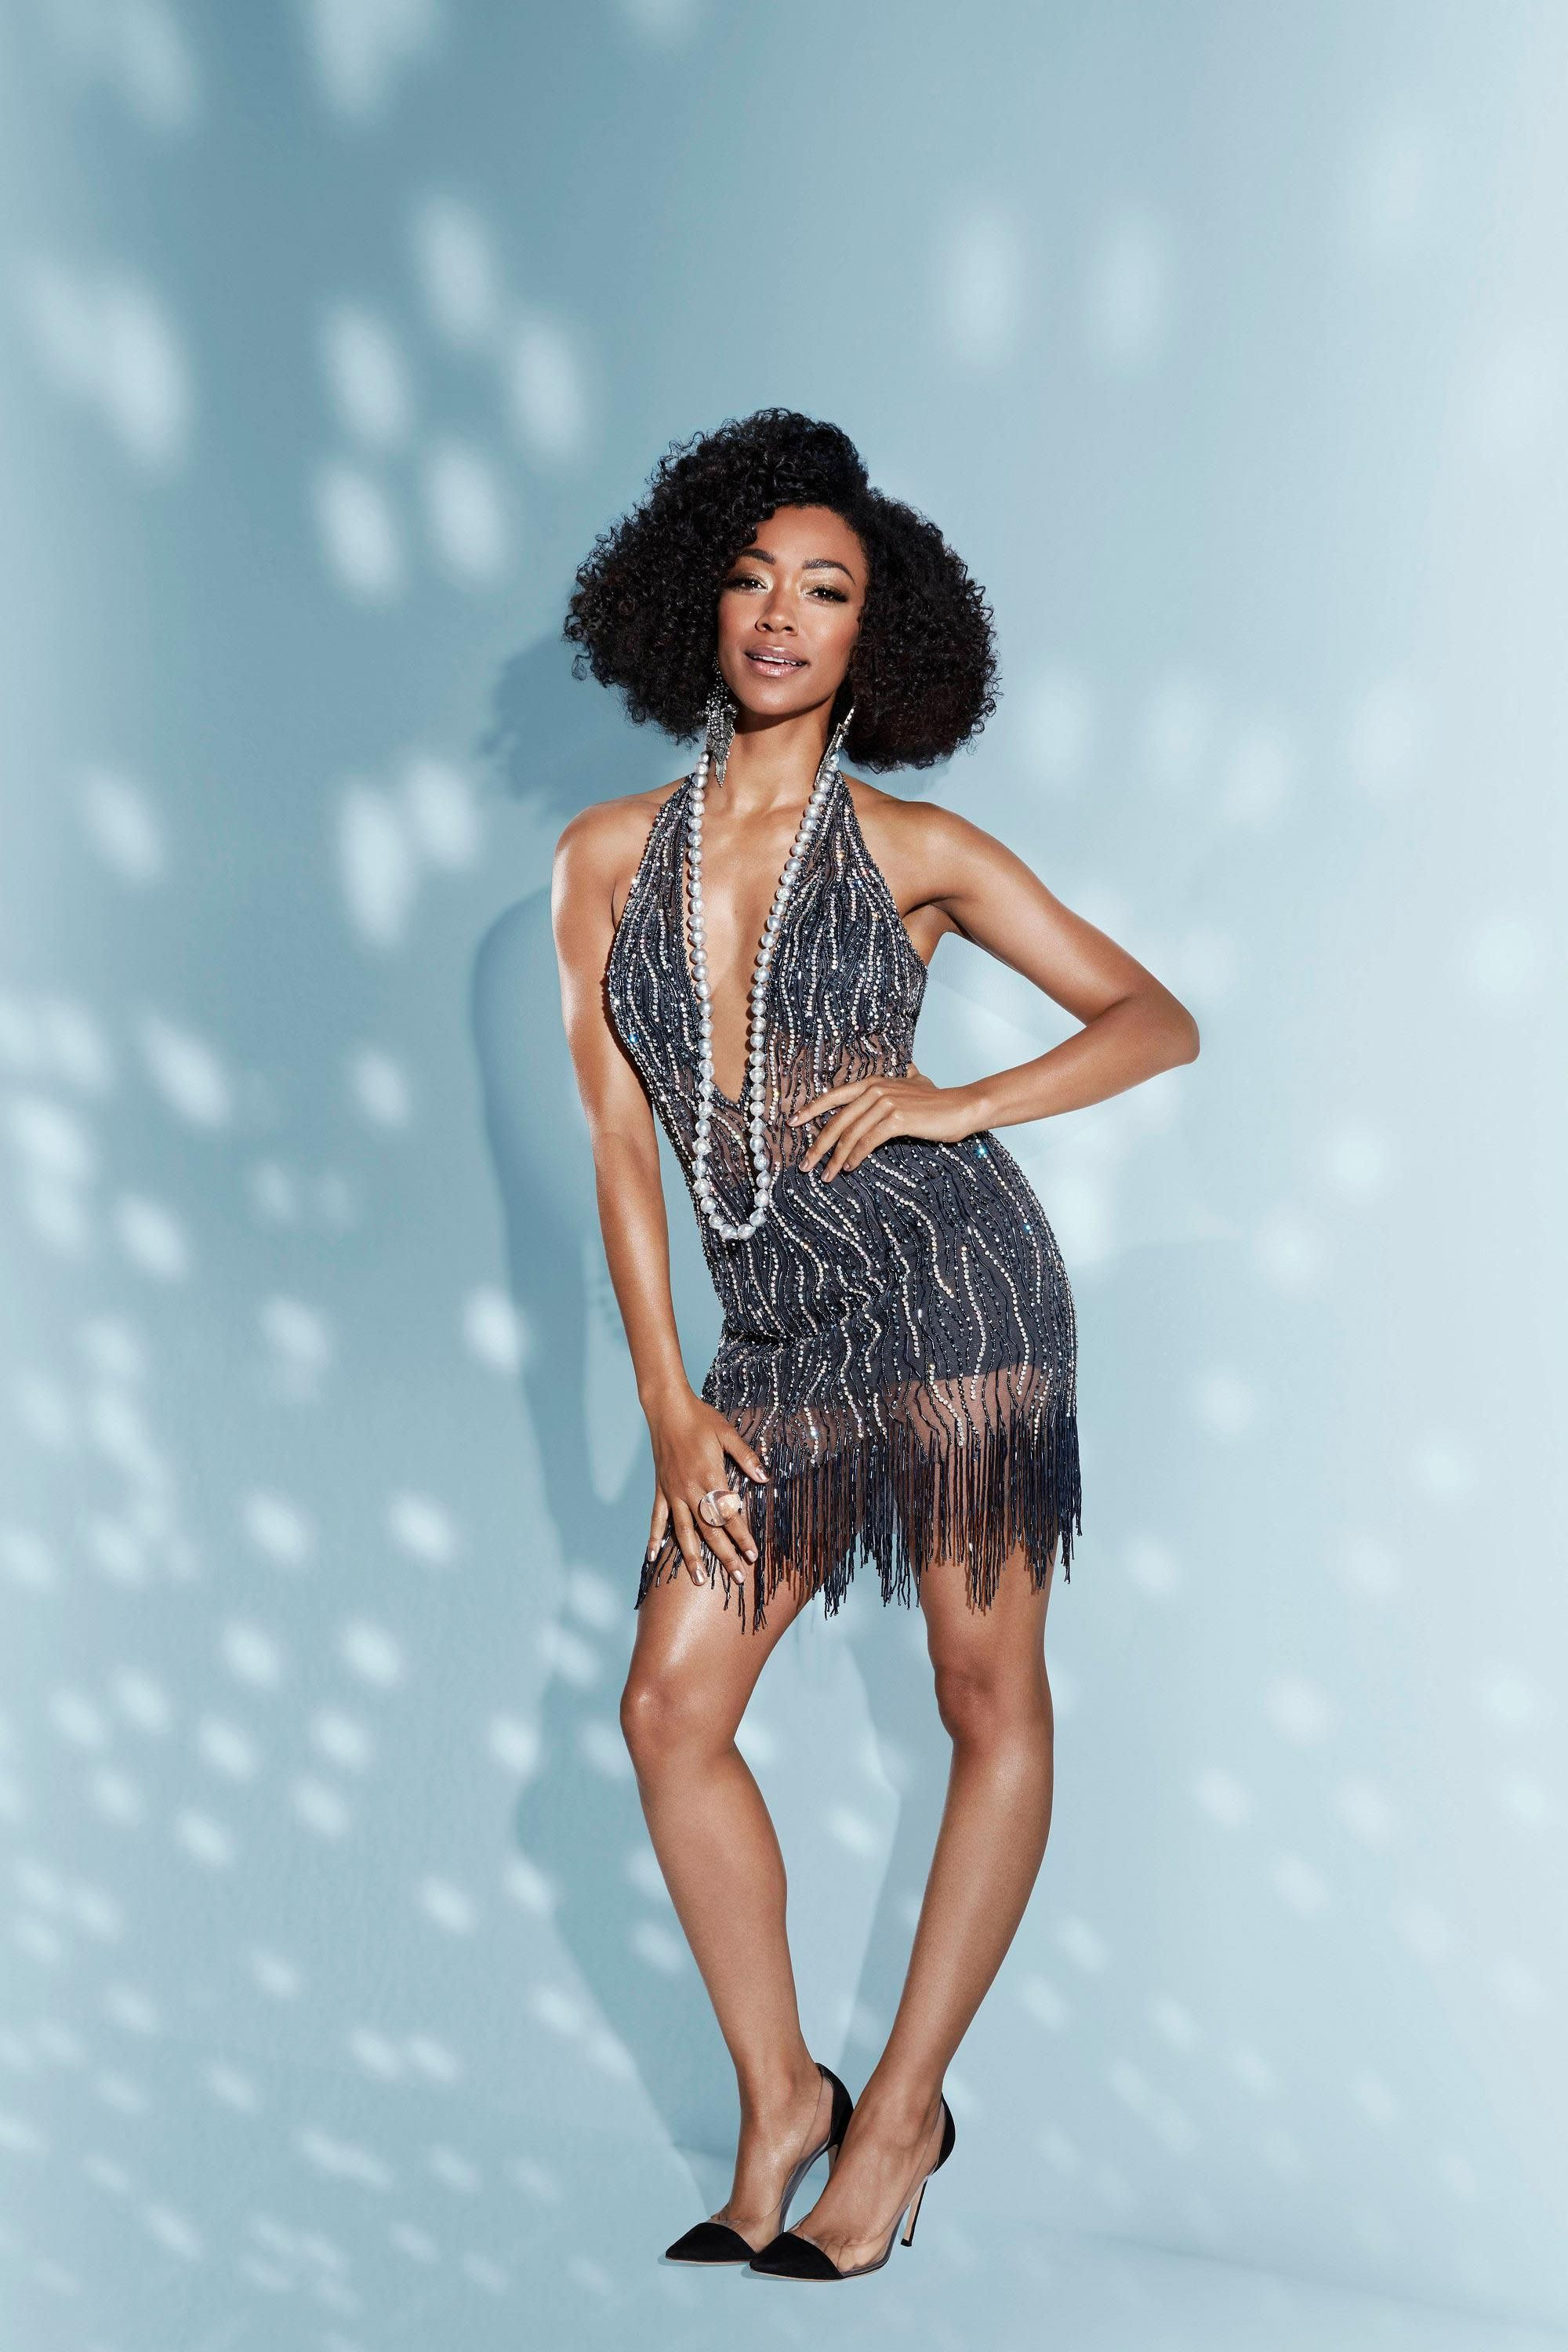 Sonequa Martin-Green in a fringed dress and pearls